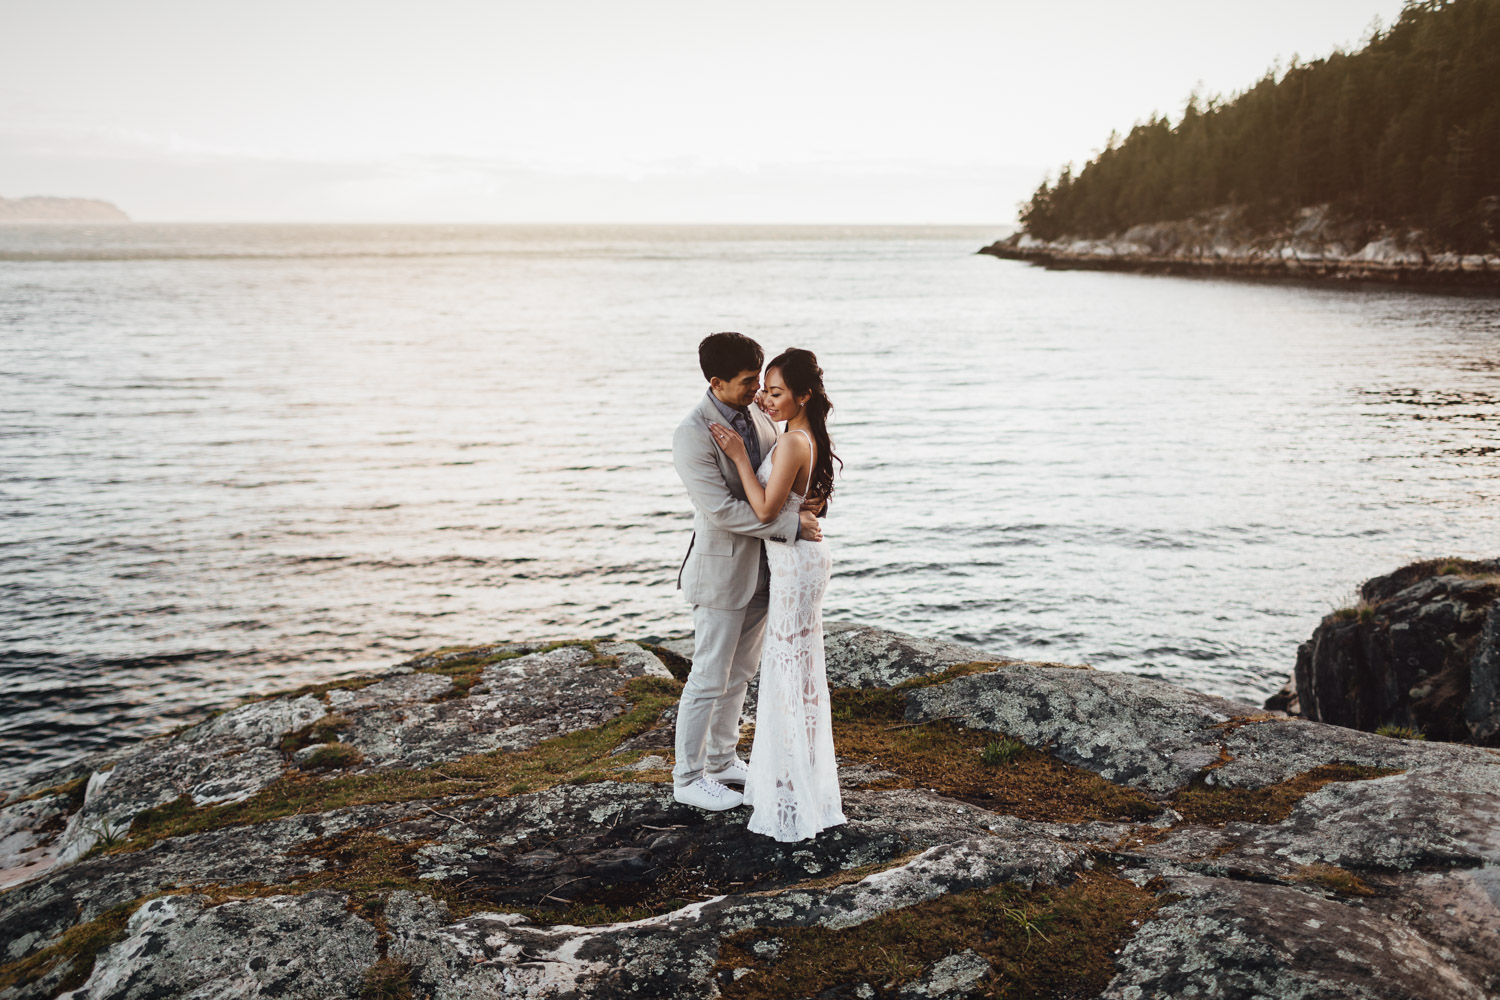 west vancouver engagement photography rocks water and sunset during golden hour